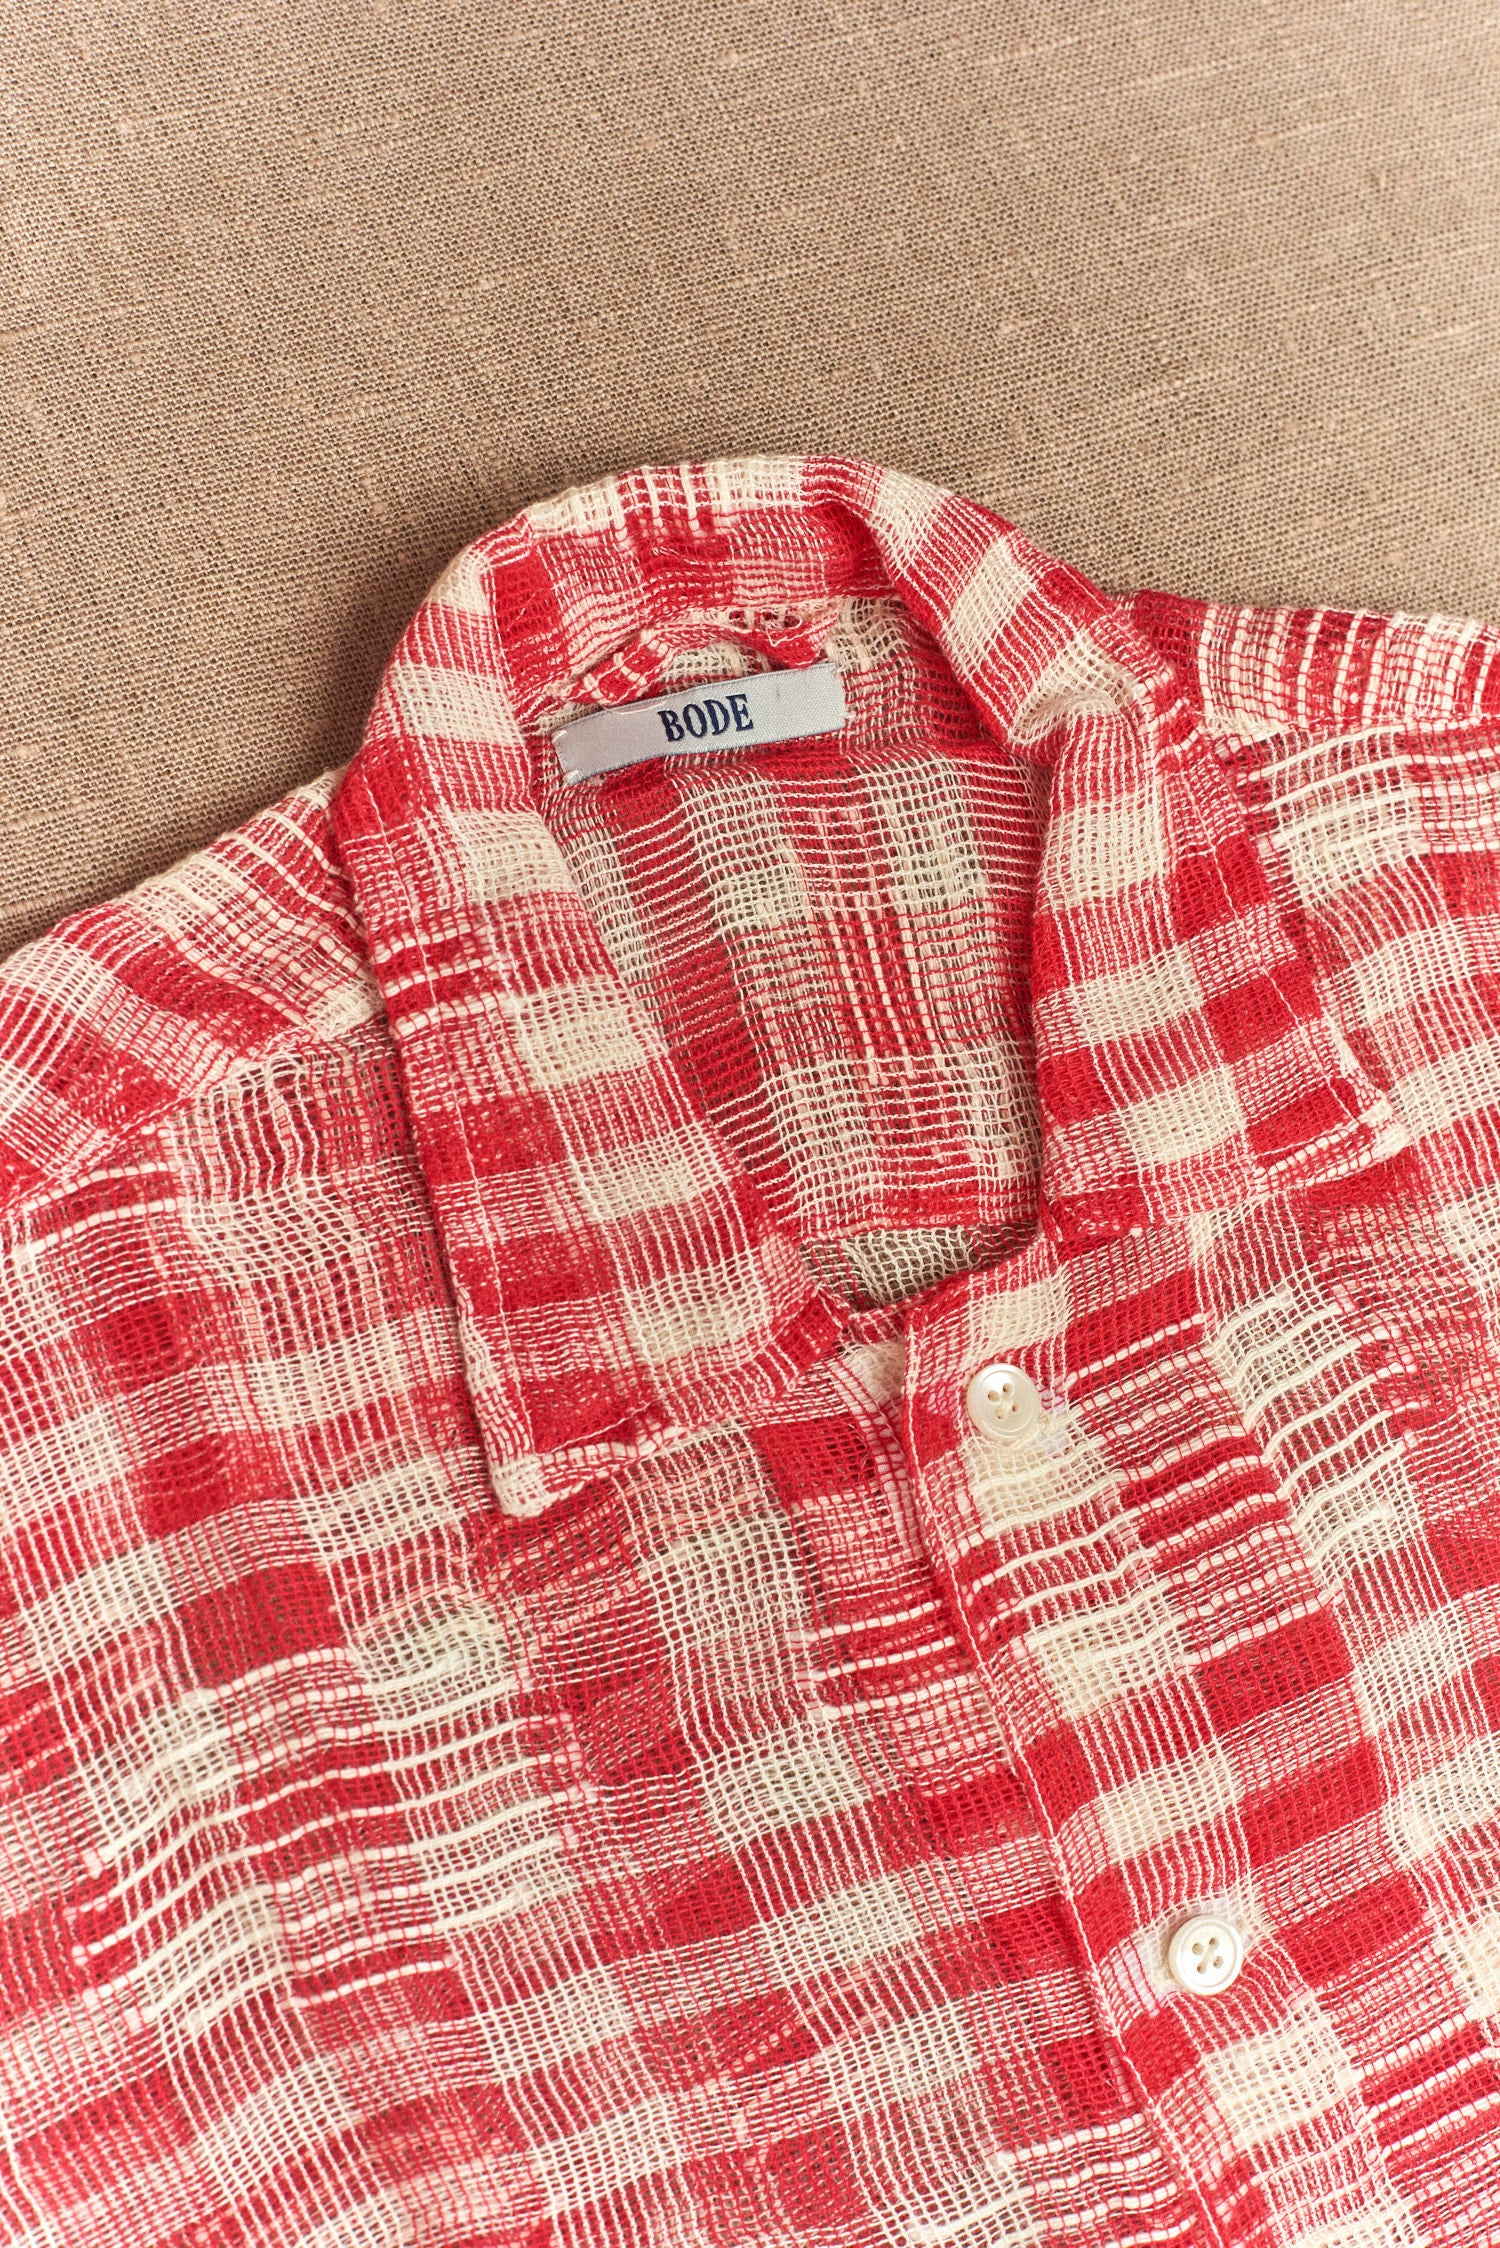 Bode, Gingham Sheer Shirt